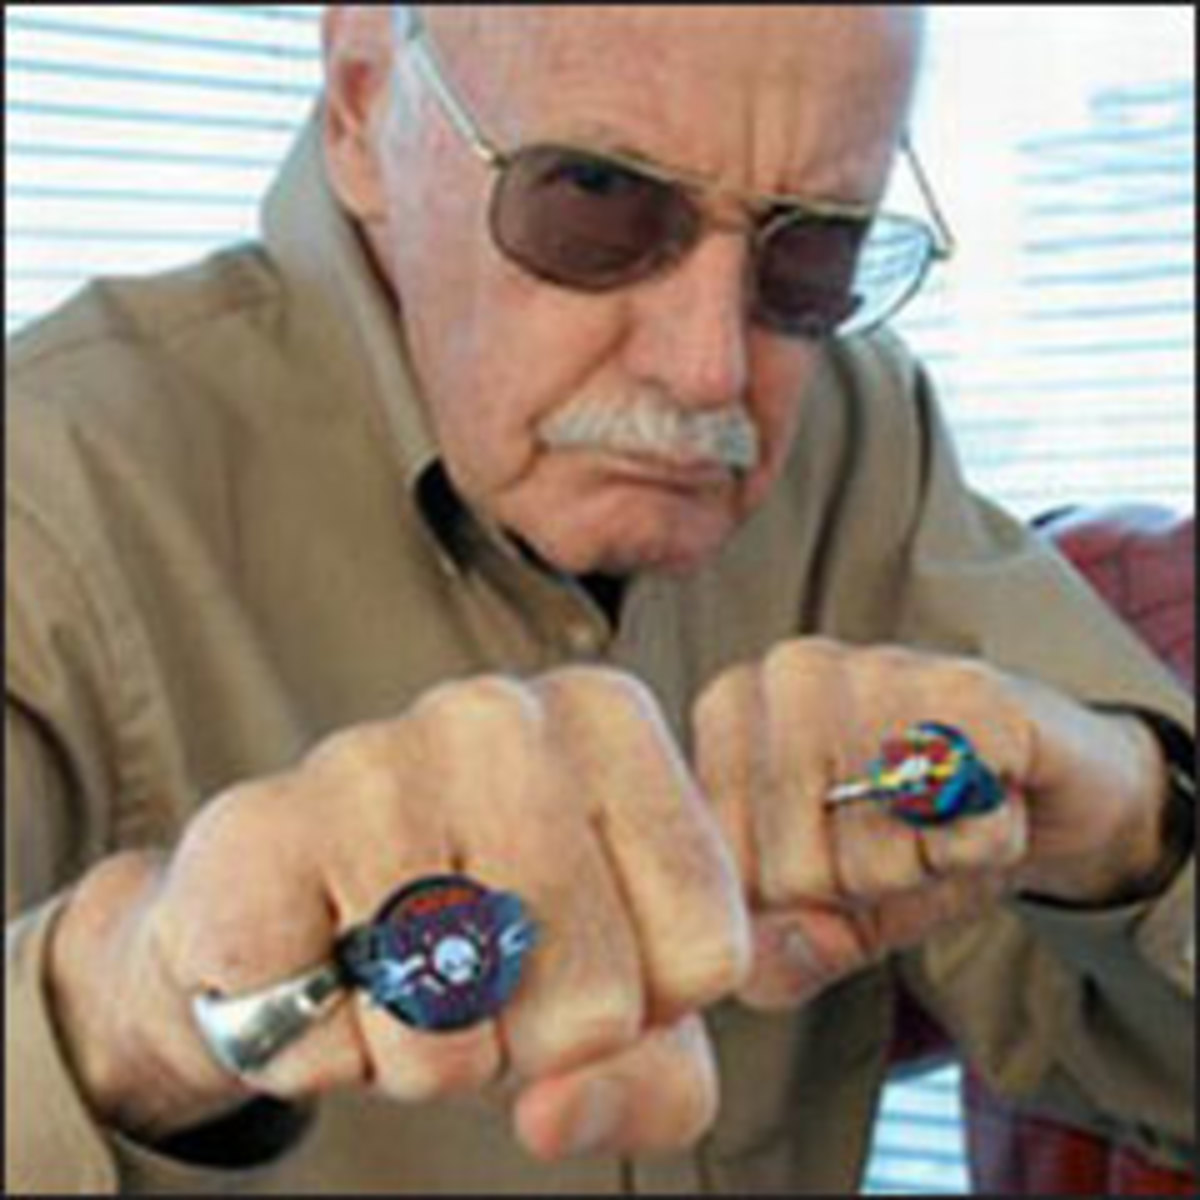 5 Real life Super Human Superhumans Science Can't Explain who Stan Lee discovered